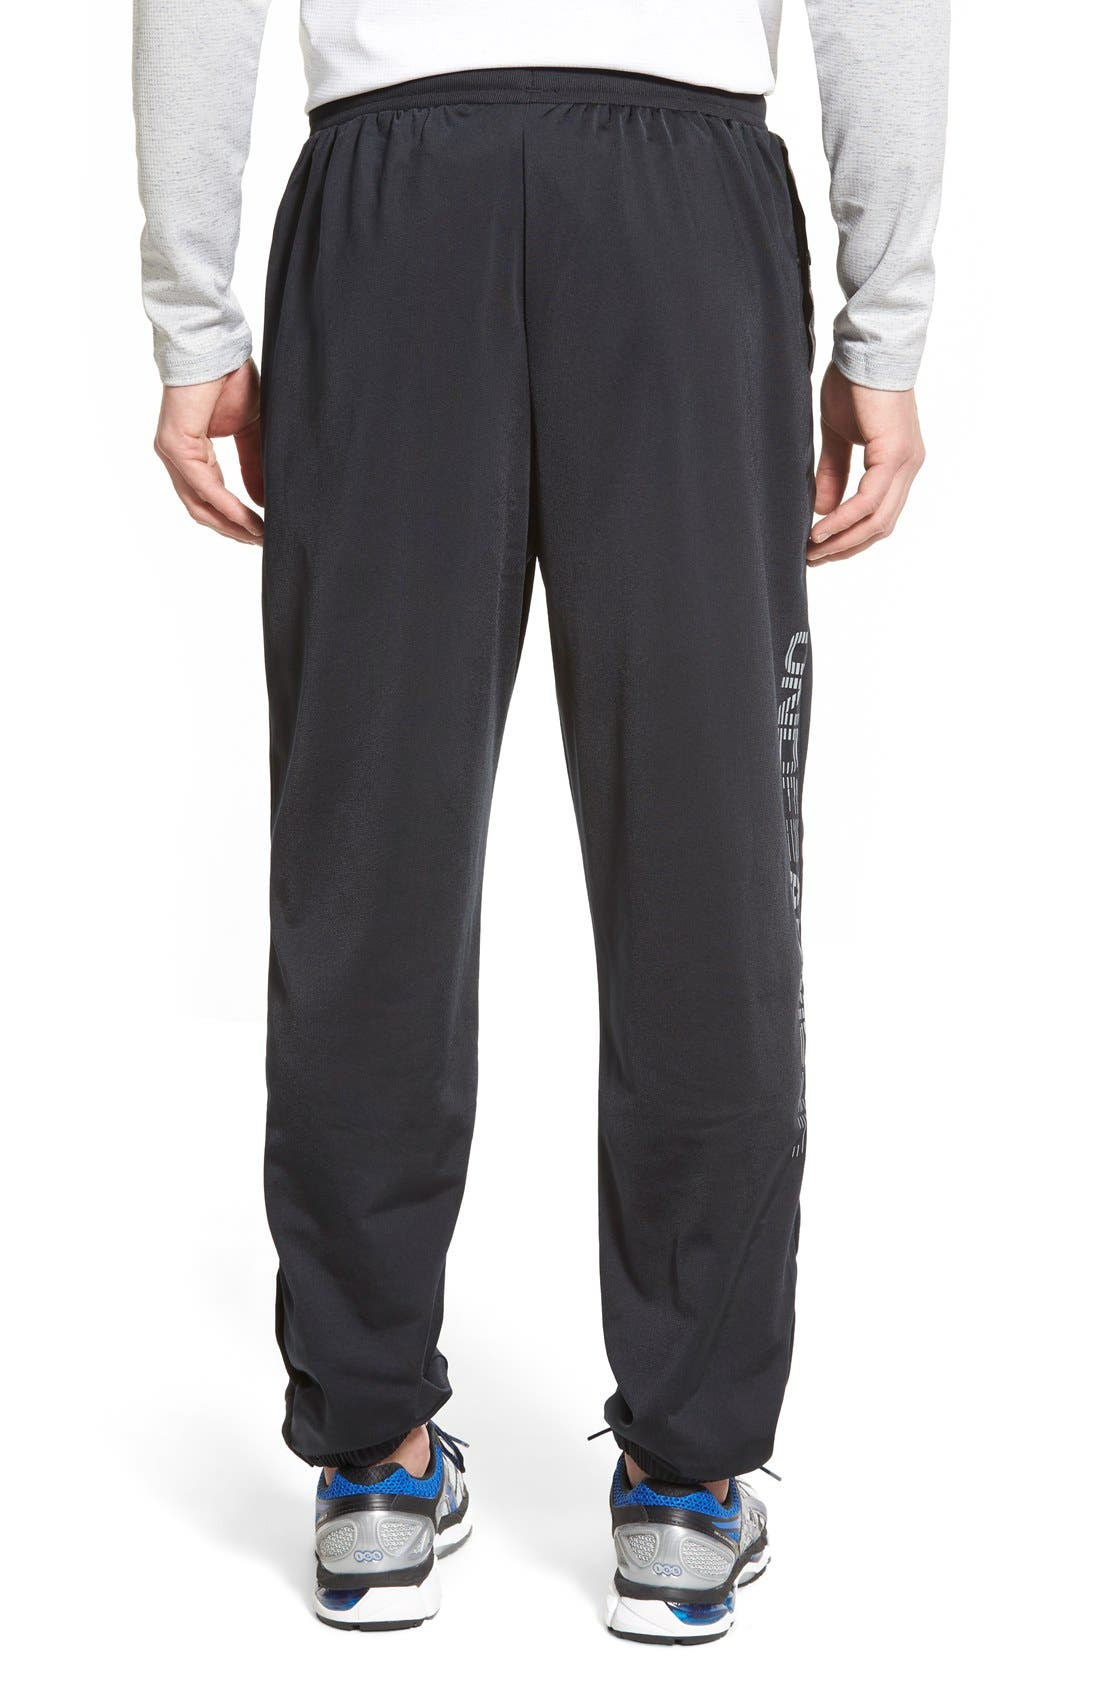 UNDER ARMOUR,                             'Diddy Bop' Moisture Wicking Training Pants,                             Alternate thumbnail 5, color,                             001